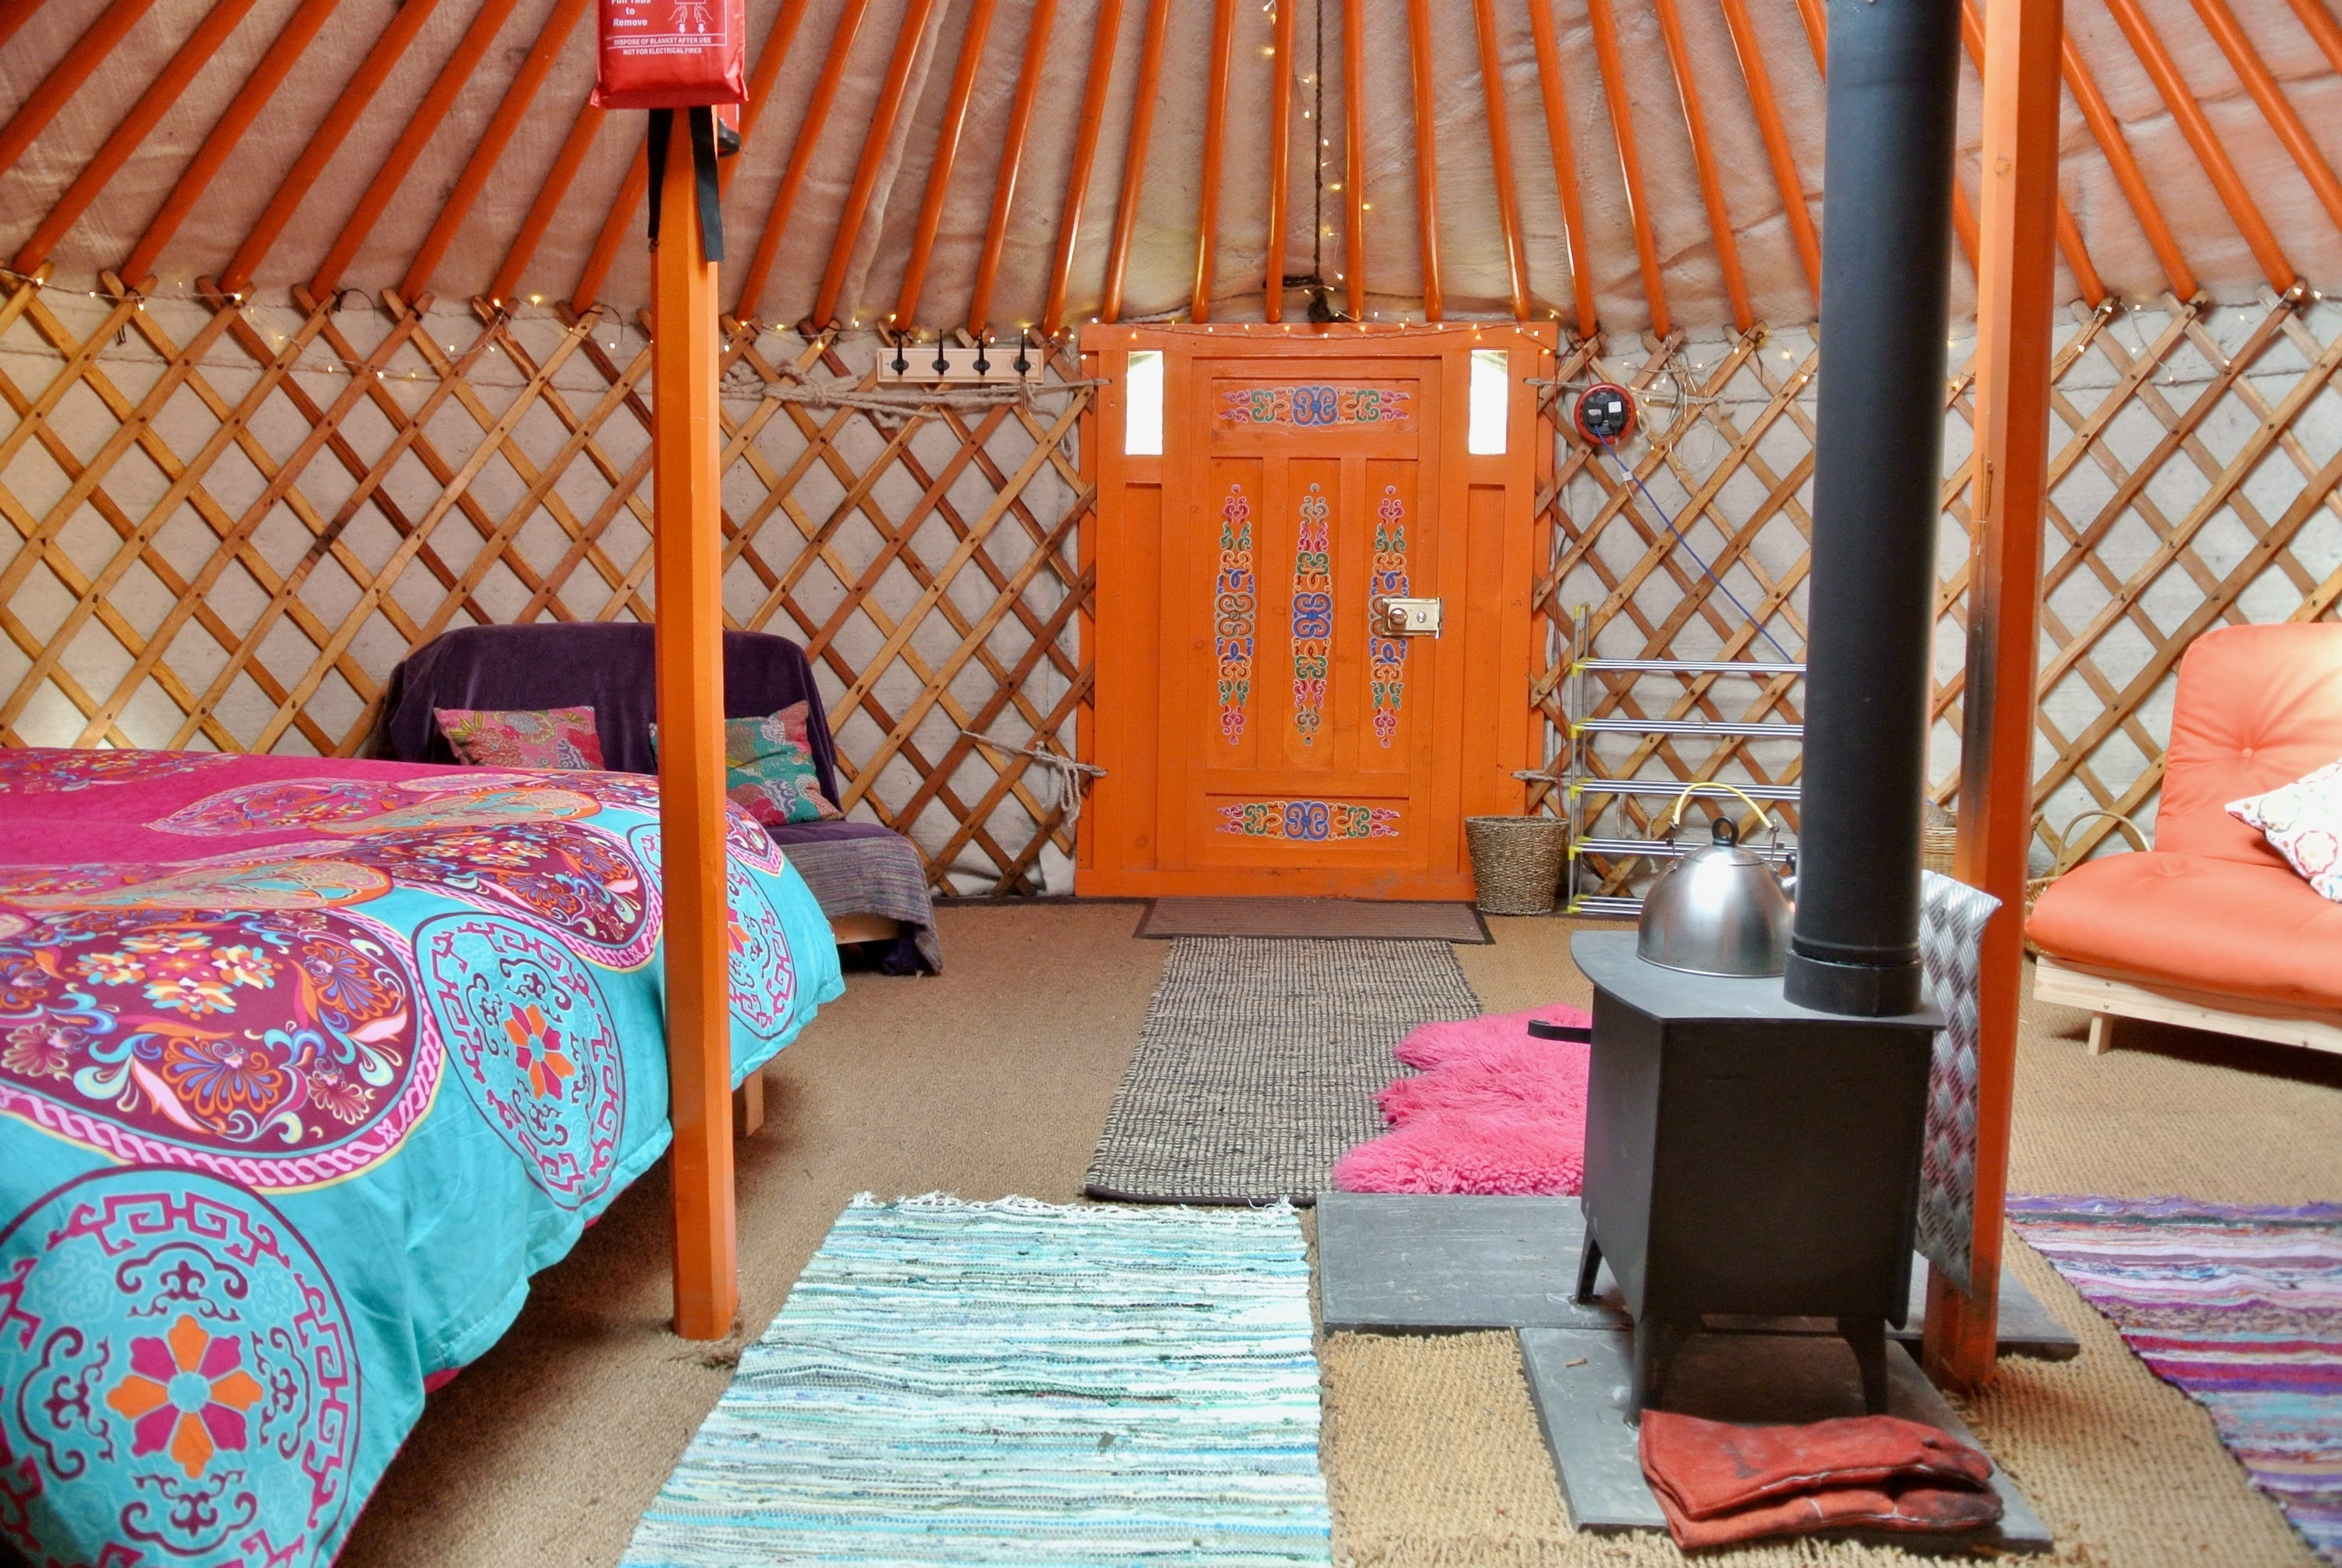 Ty crwn mawr yurt interior 5 off grid sustainable eco glampsite and glamping